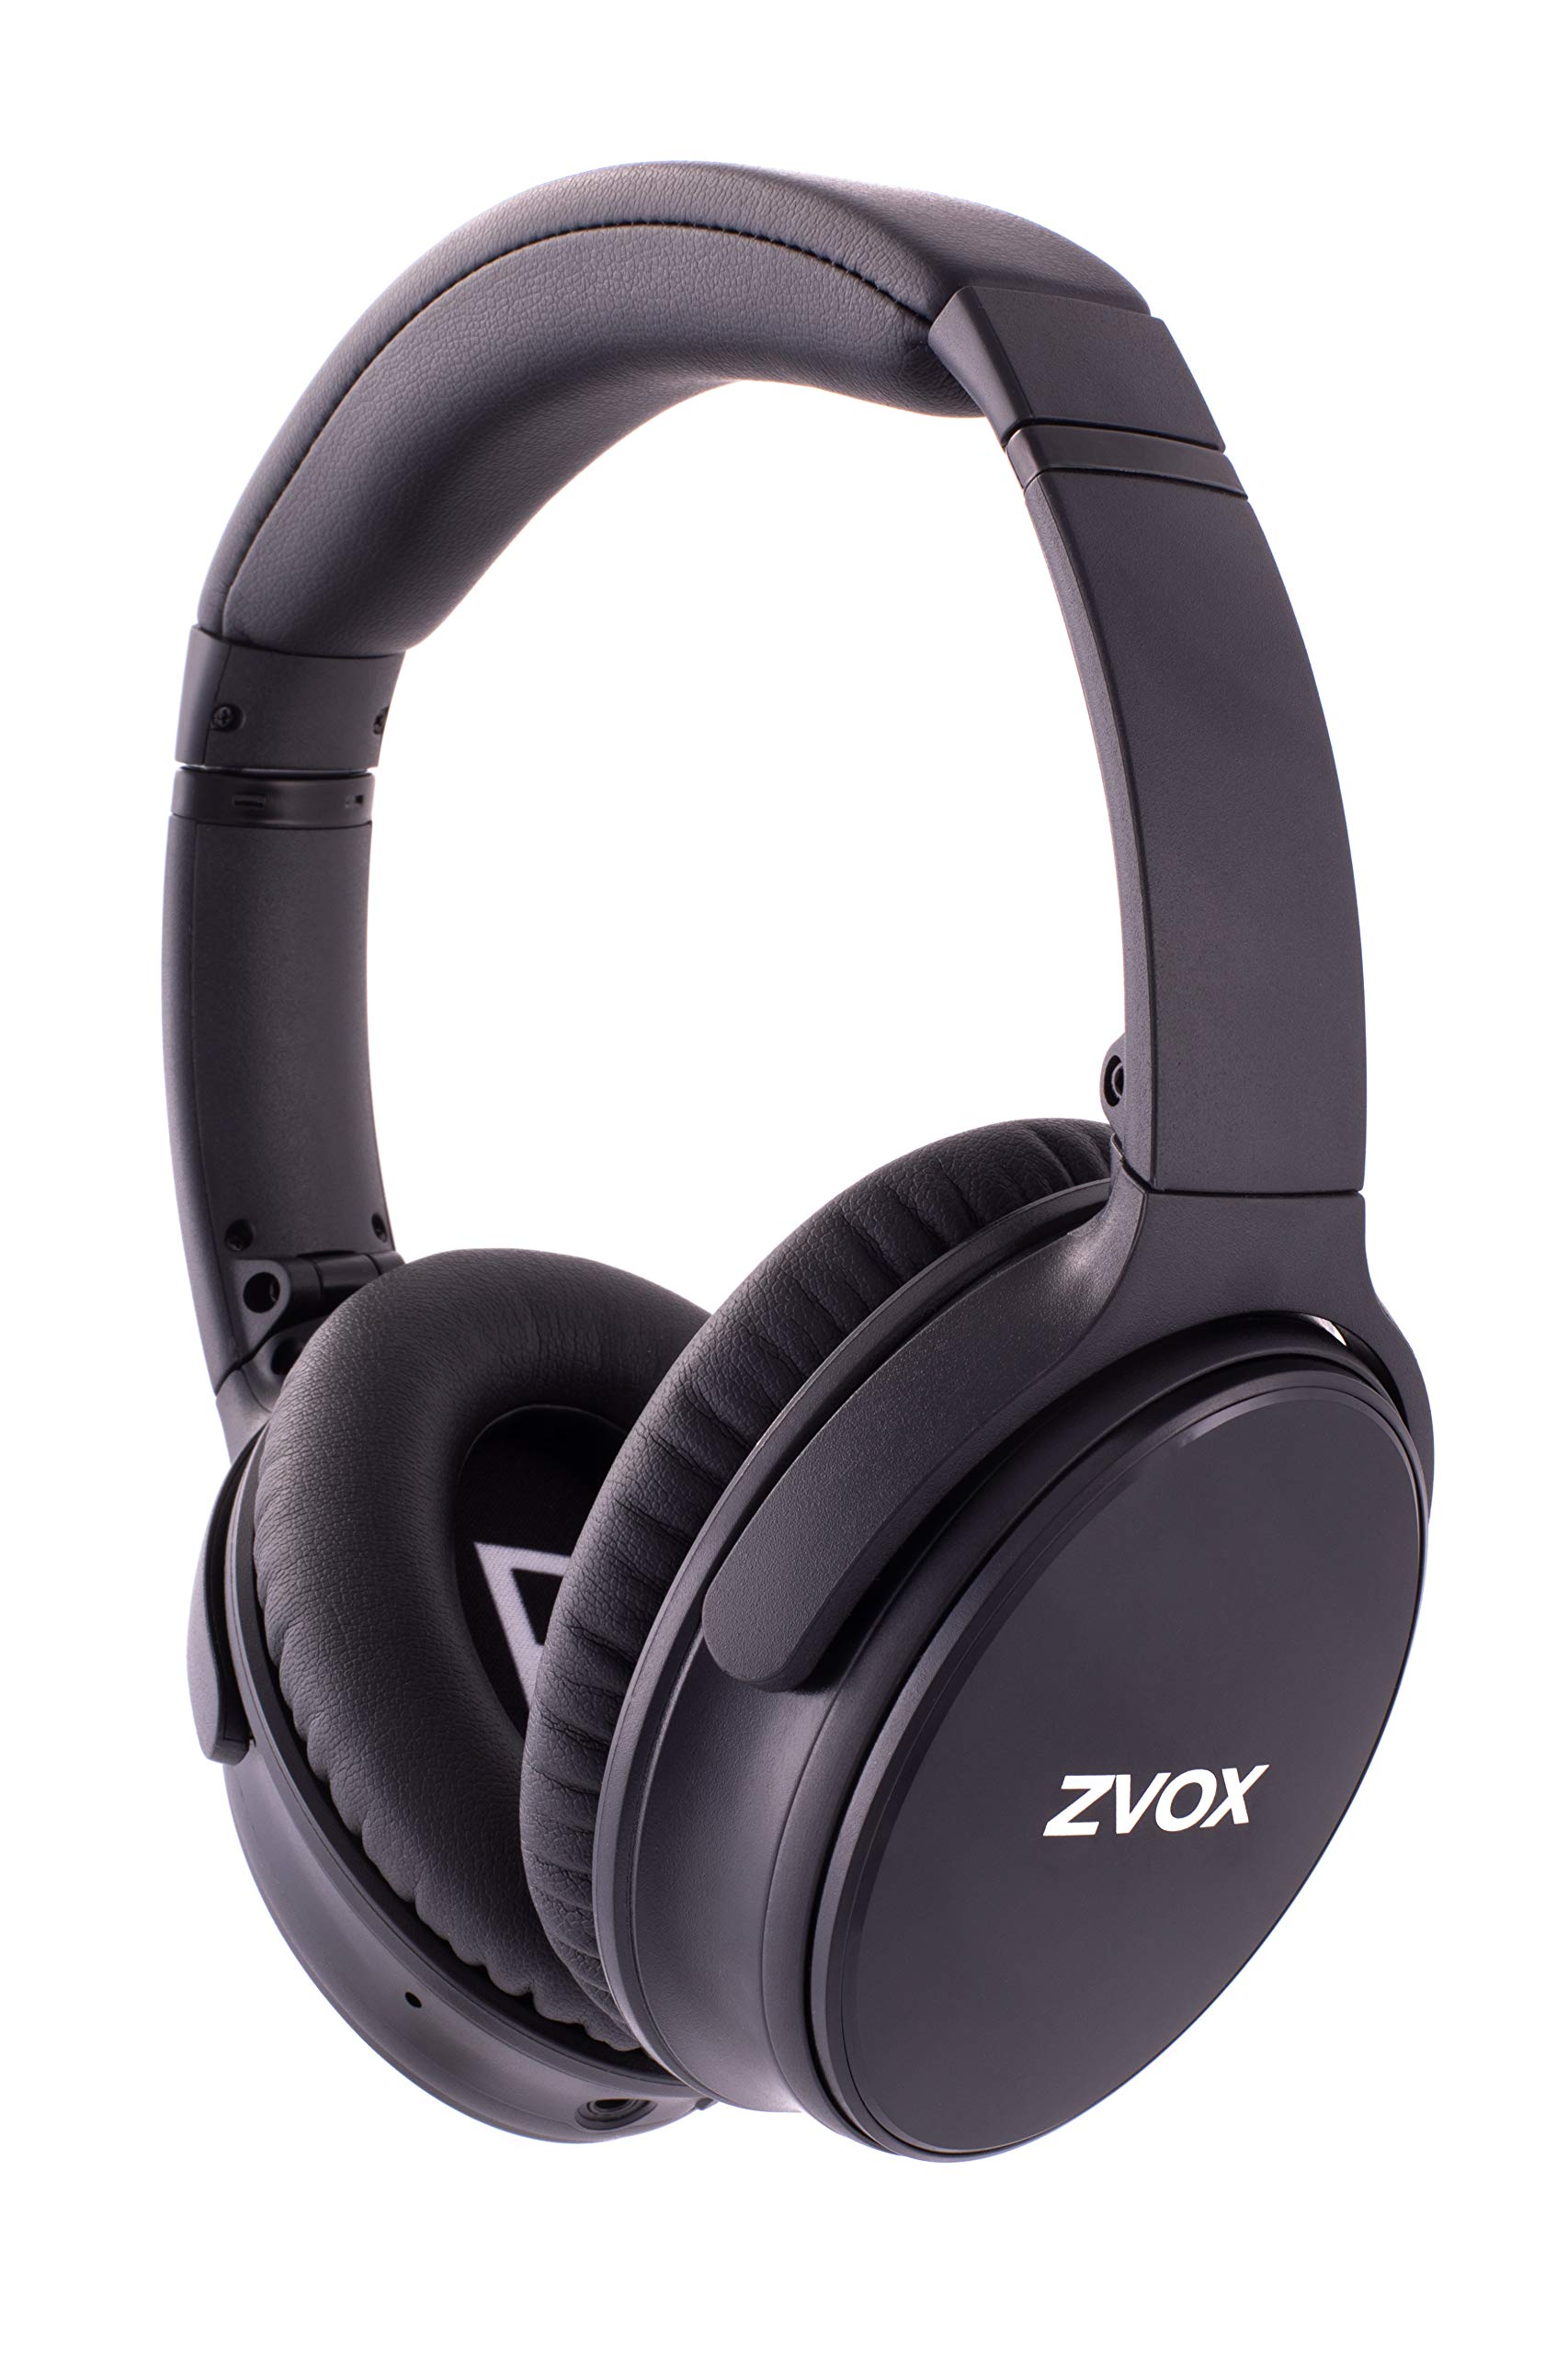 ZVOX AccuVoice AV50 Noise Cancelling Headphones (Black) by ZVOX